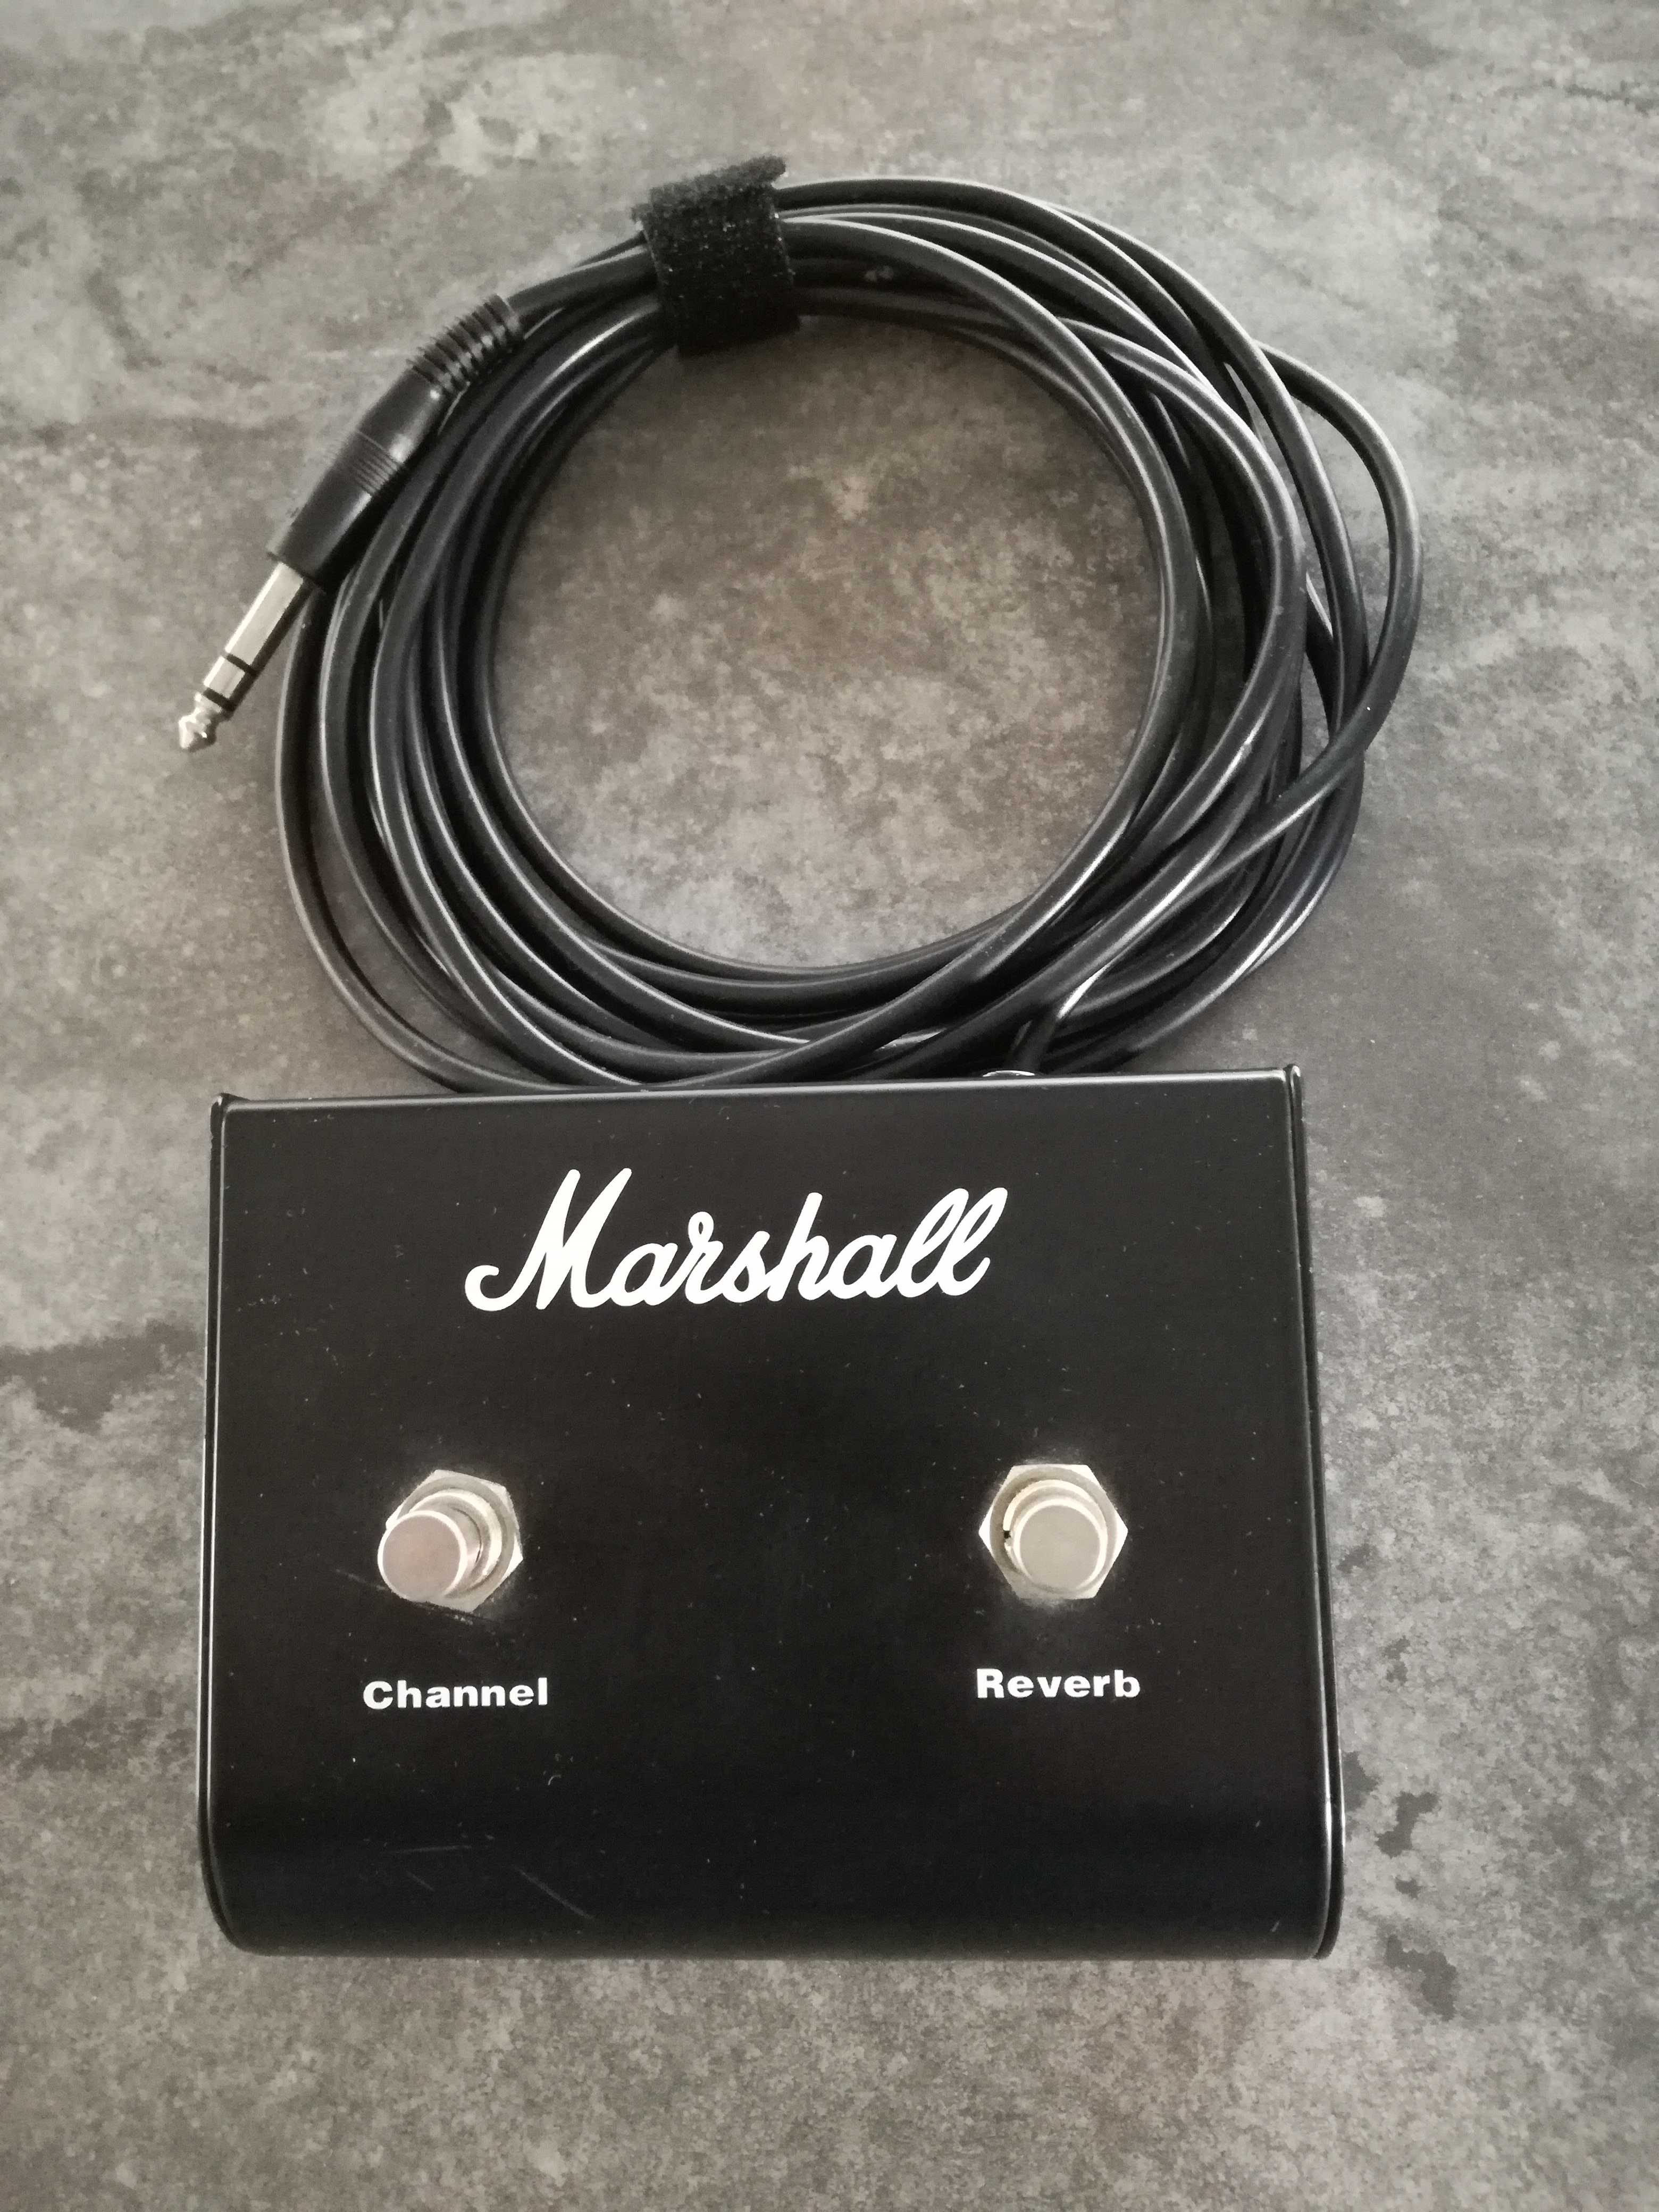 chorus PEDL10010 Footswitch Marshall 2 voies channel